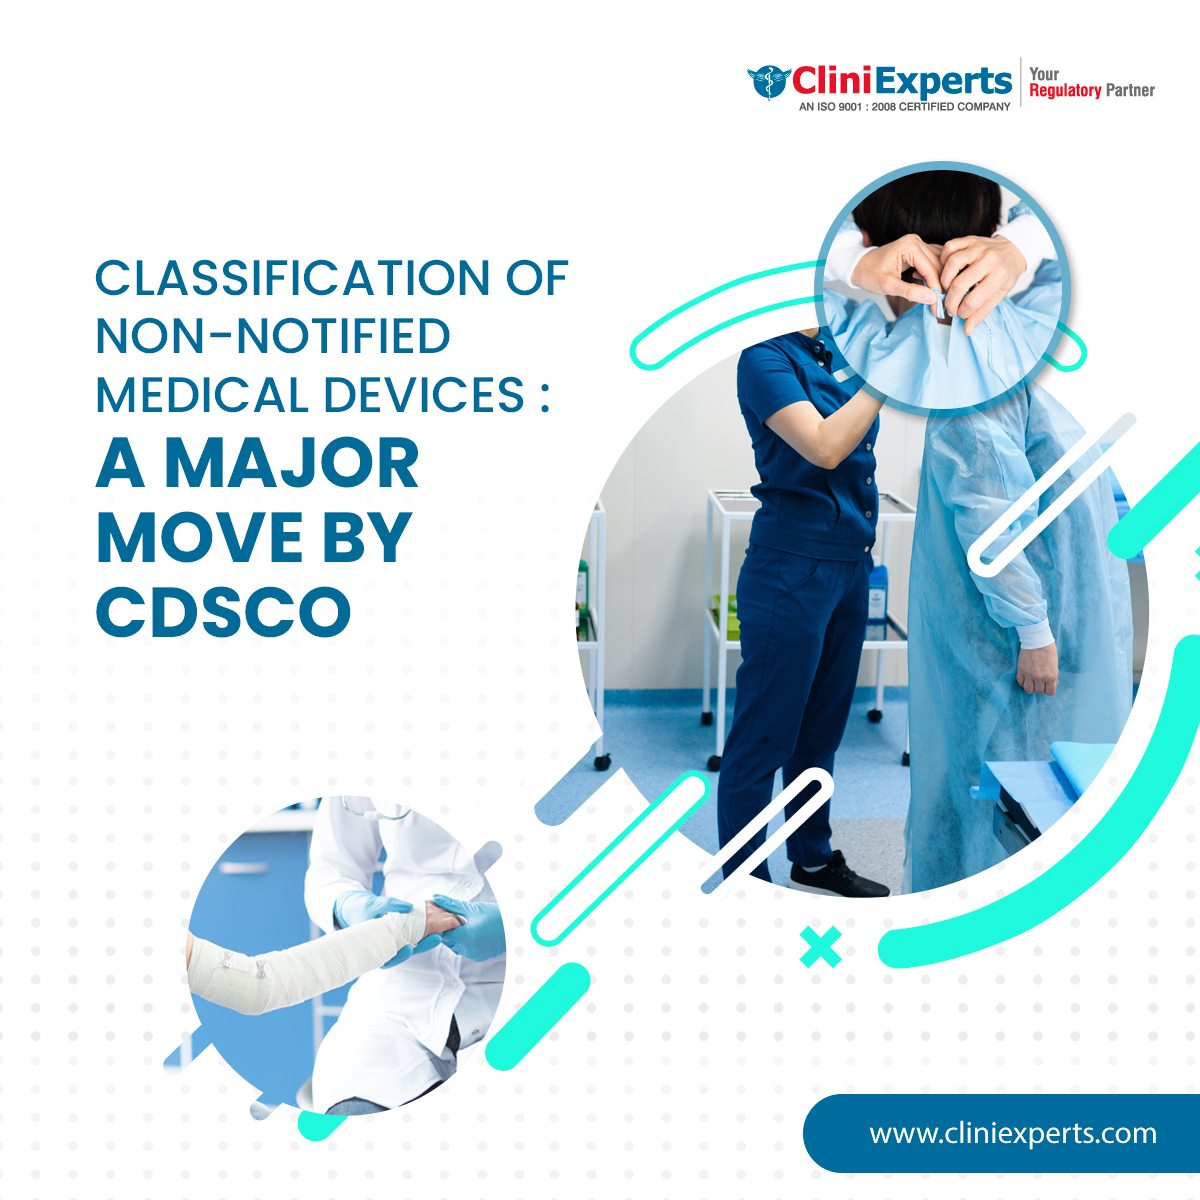 Classification of non-notified Medical Devices : A major move by CDSCO